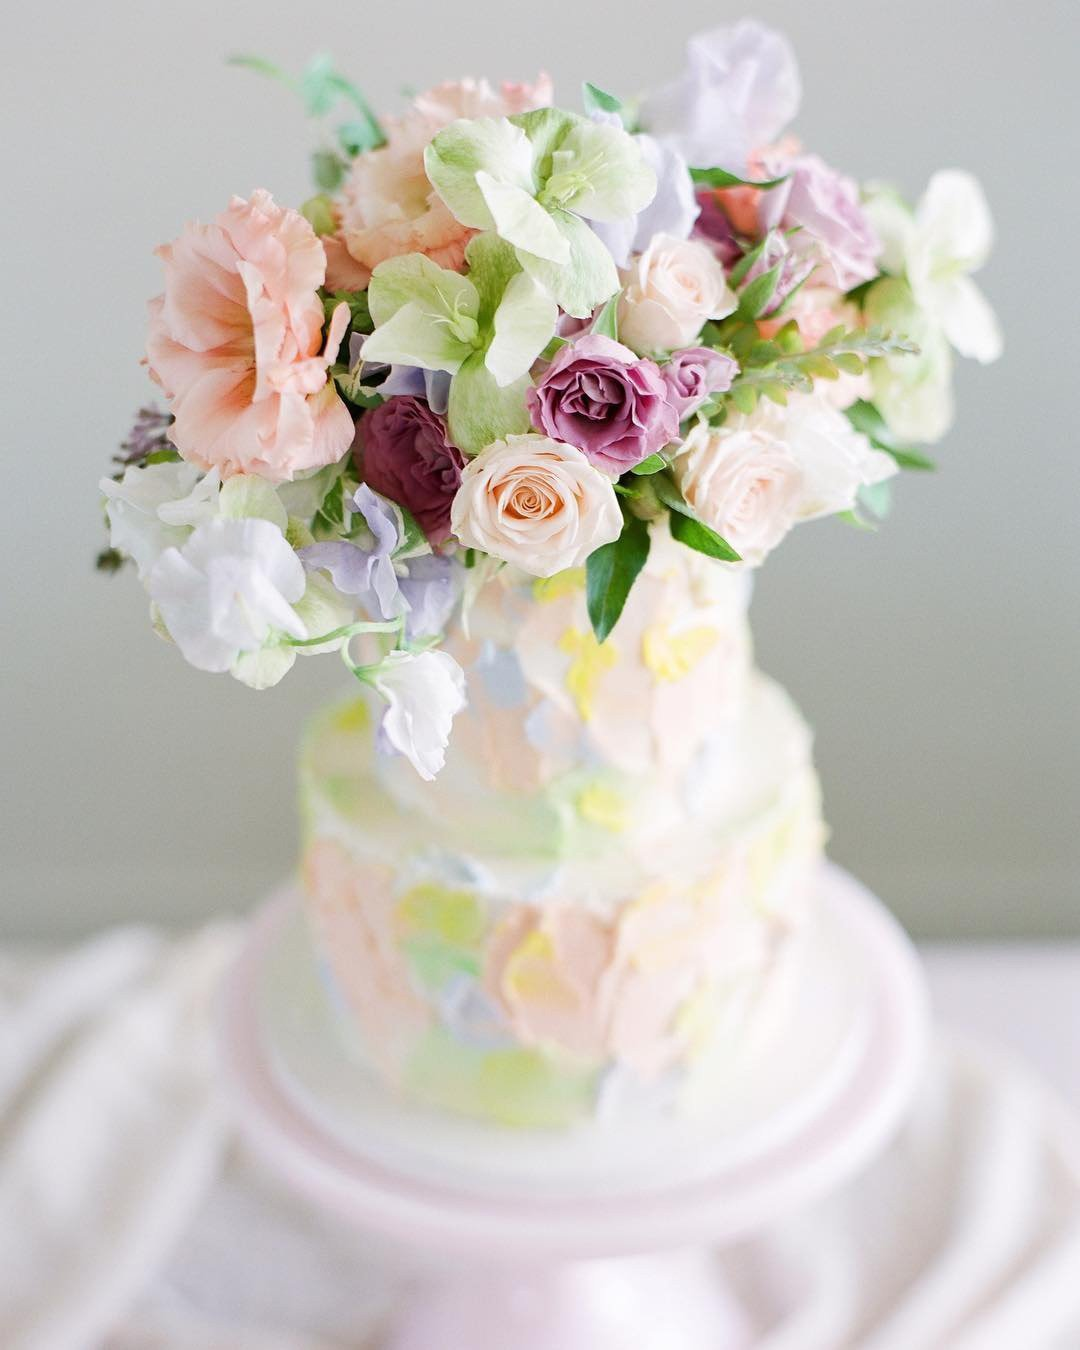 wedding colors color palette Mint Green Peach Pink Watermelon Pink wedding cake with flowers